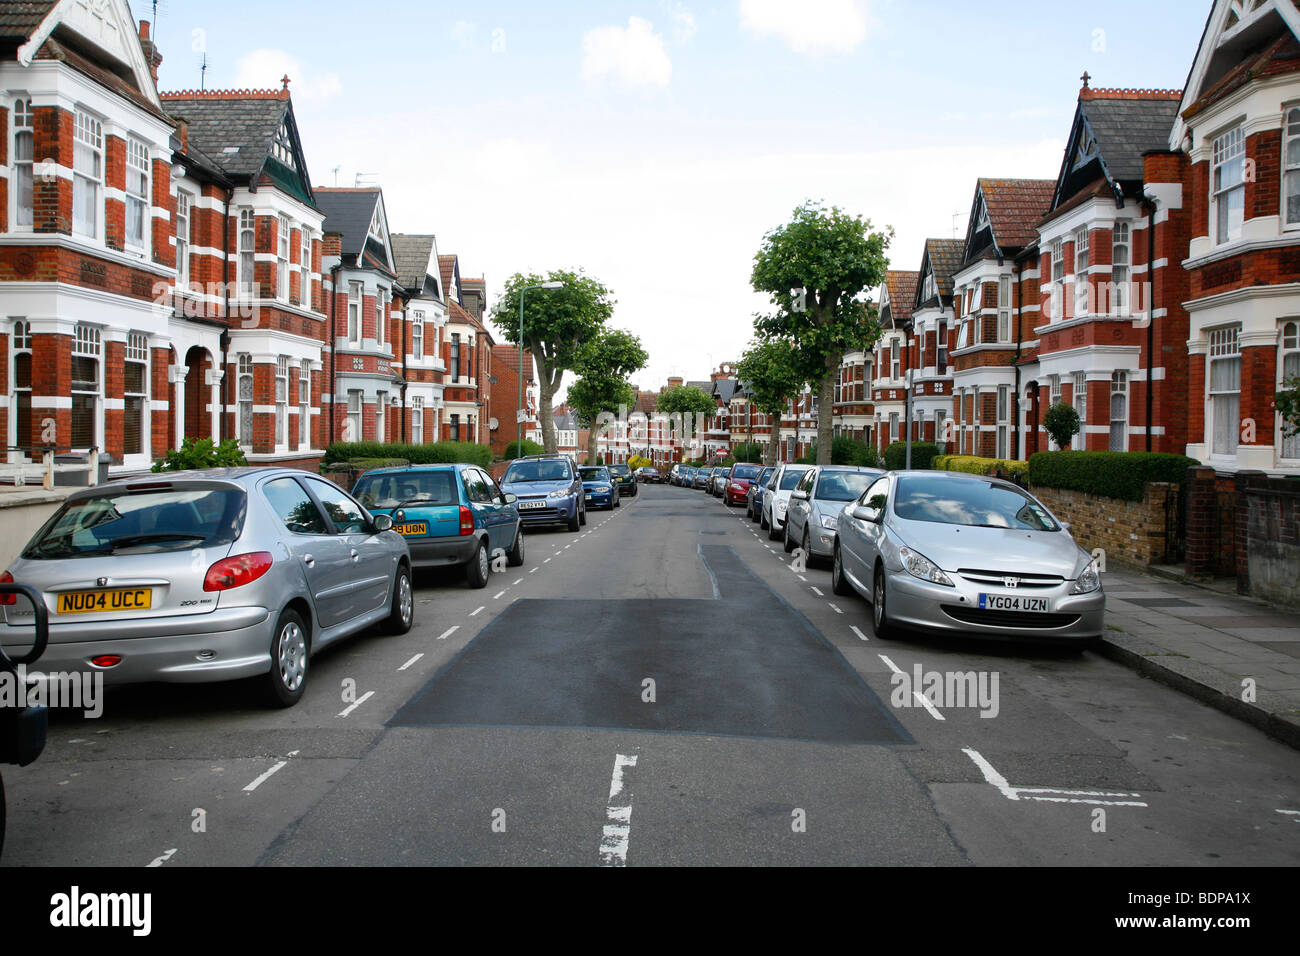 Edwardian housing on Harlesden Gardens, Harlesden, London, UK - Stock Image